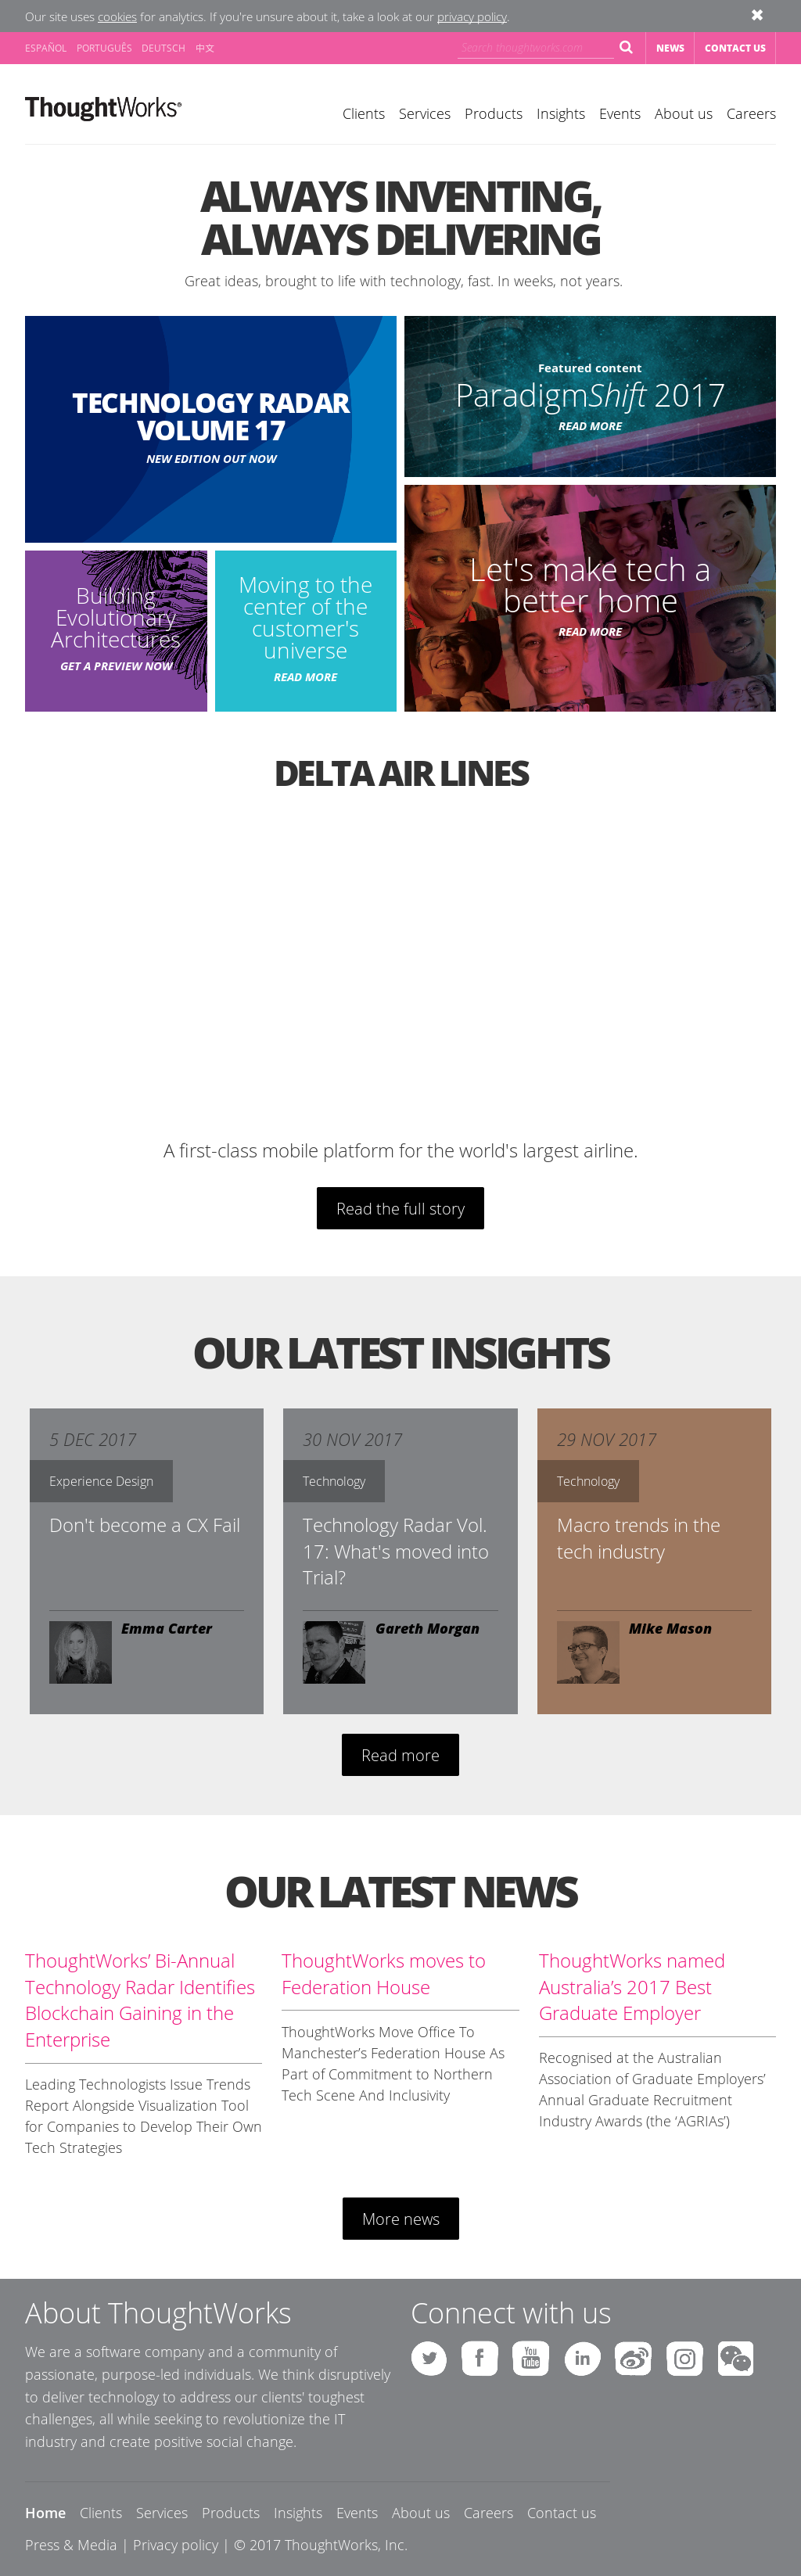 ThoughtWorks Competitors, Revenue and Employees - Owler